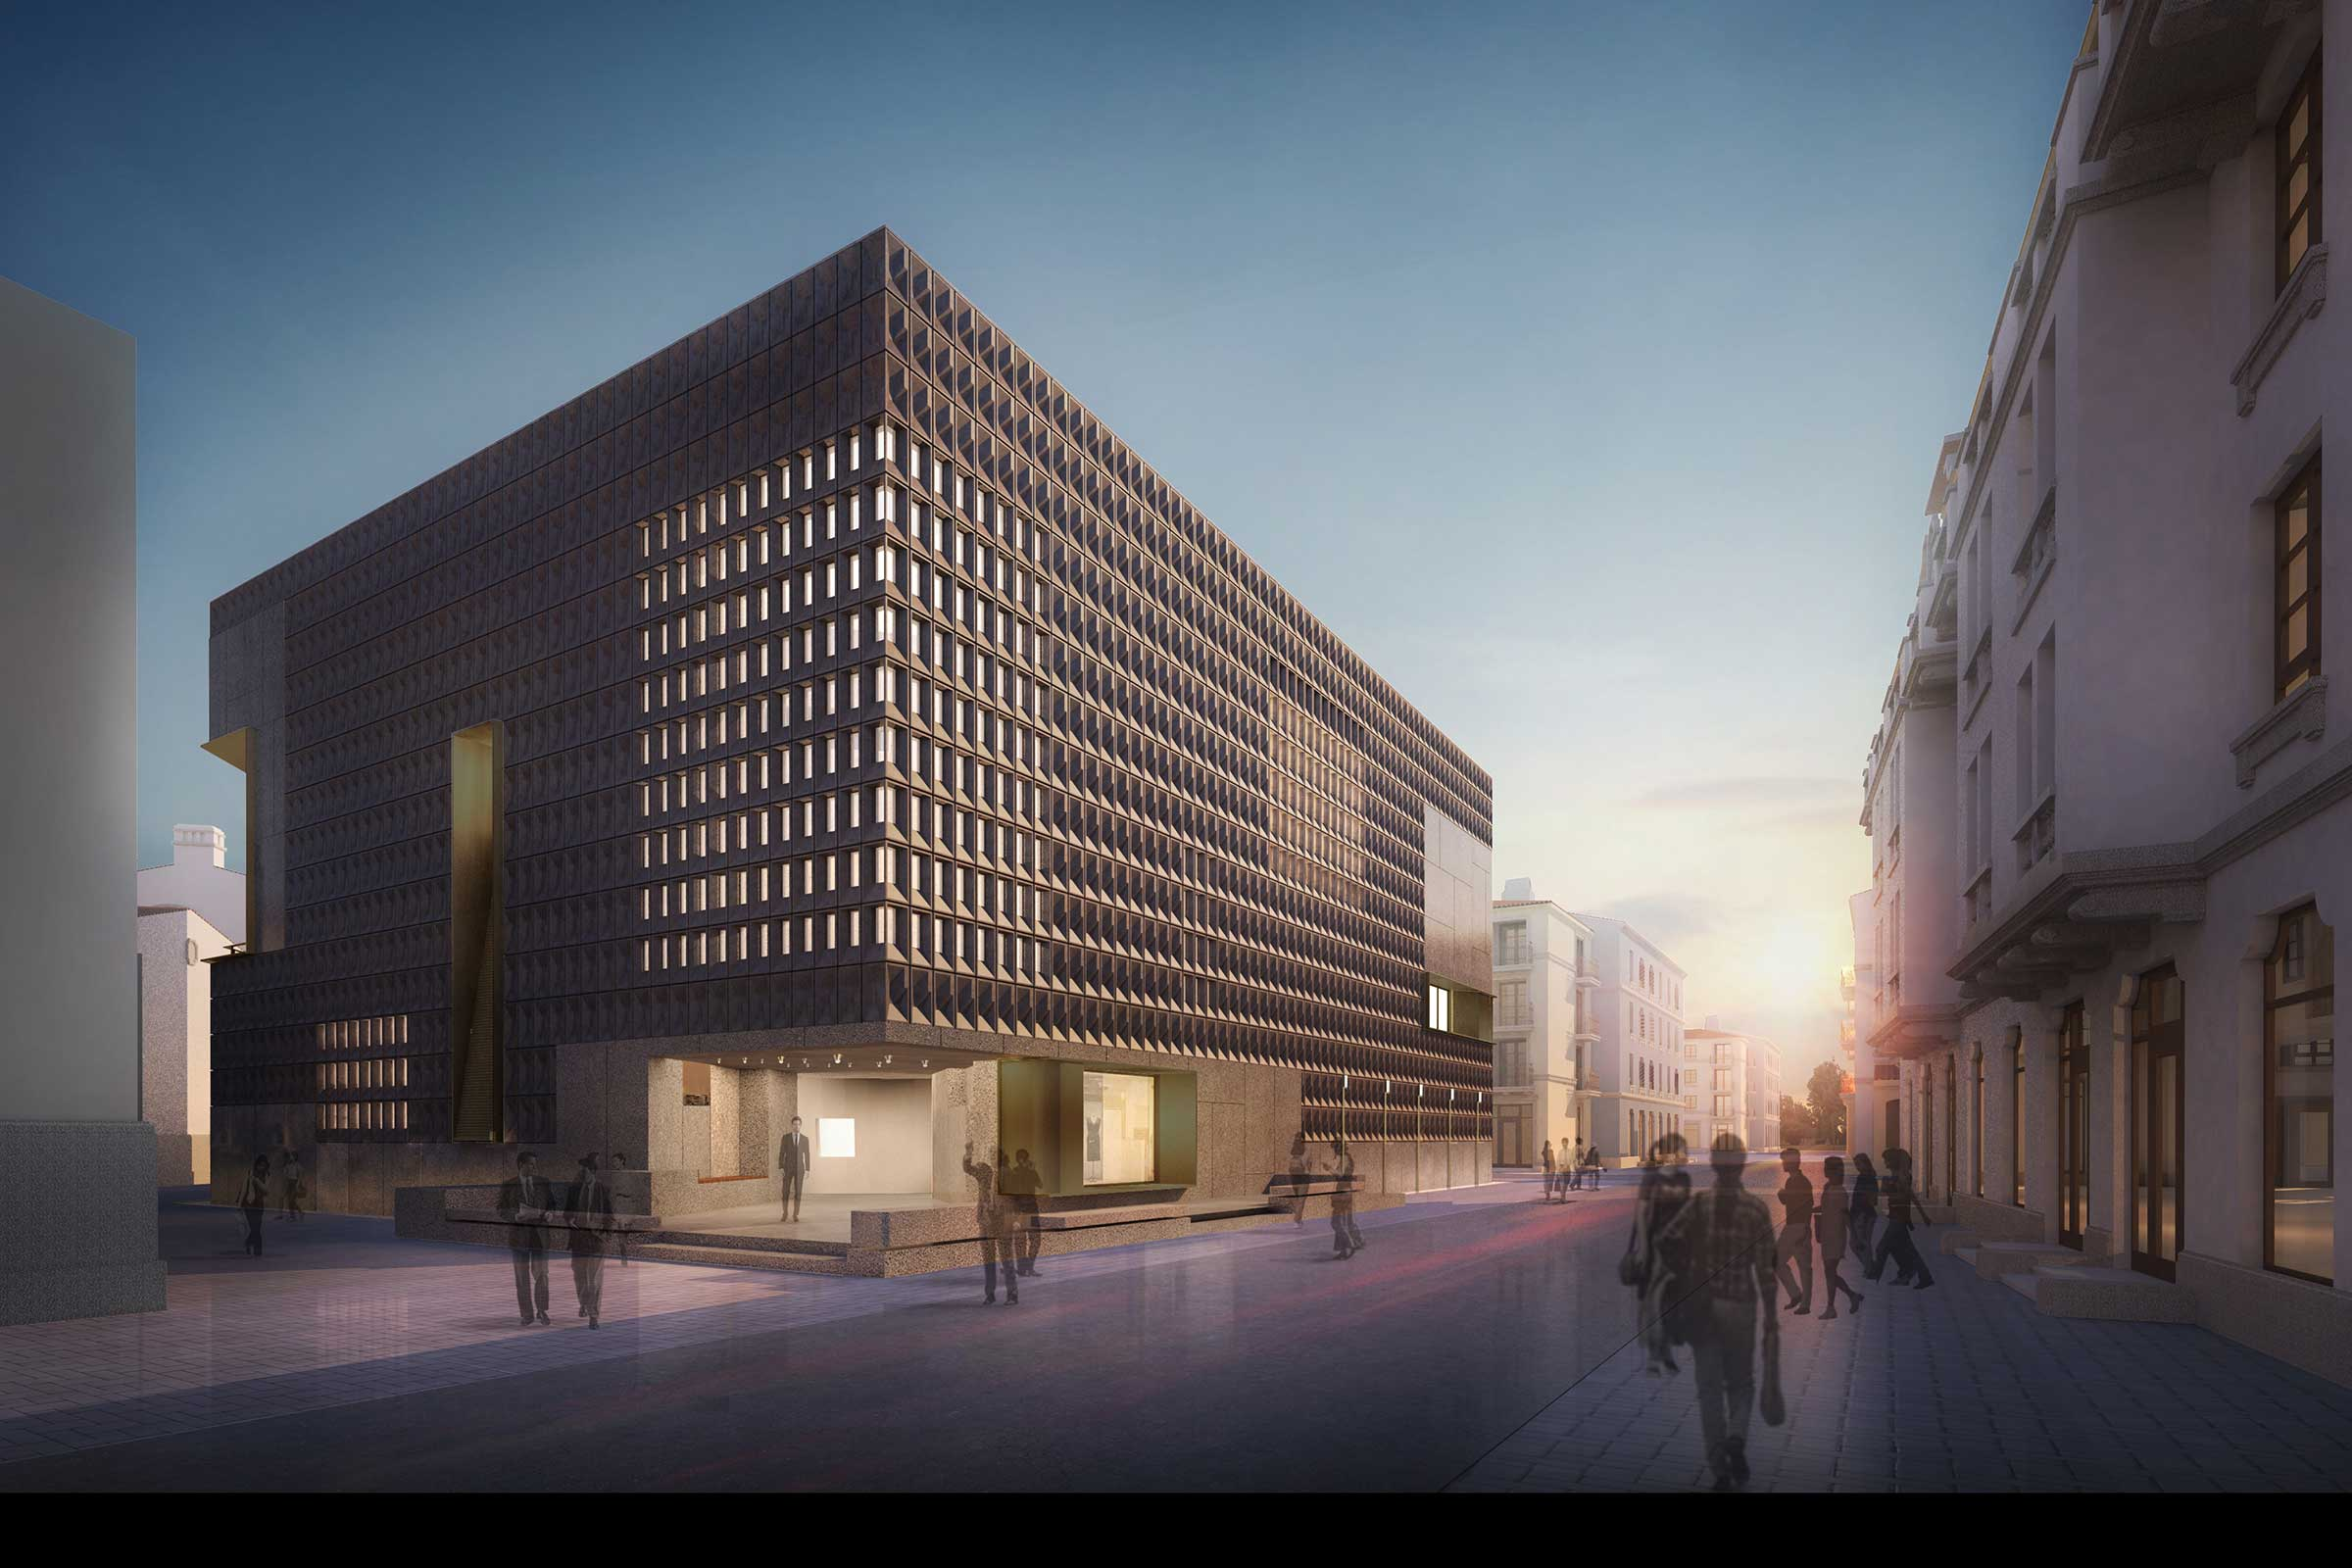 A render of the art centre from Neri&Hu Design and Research Office